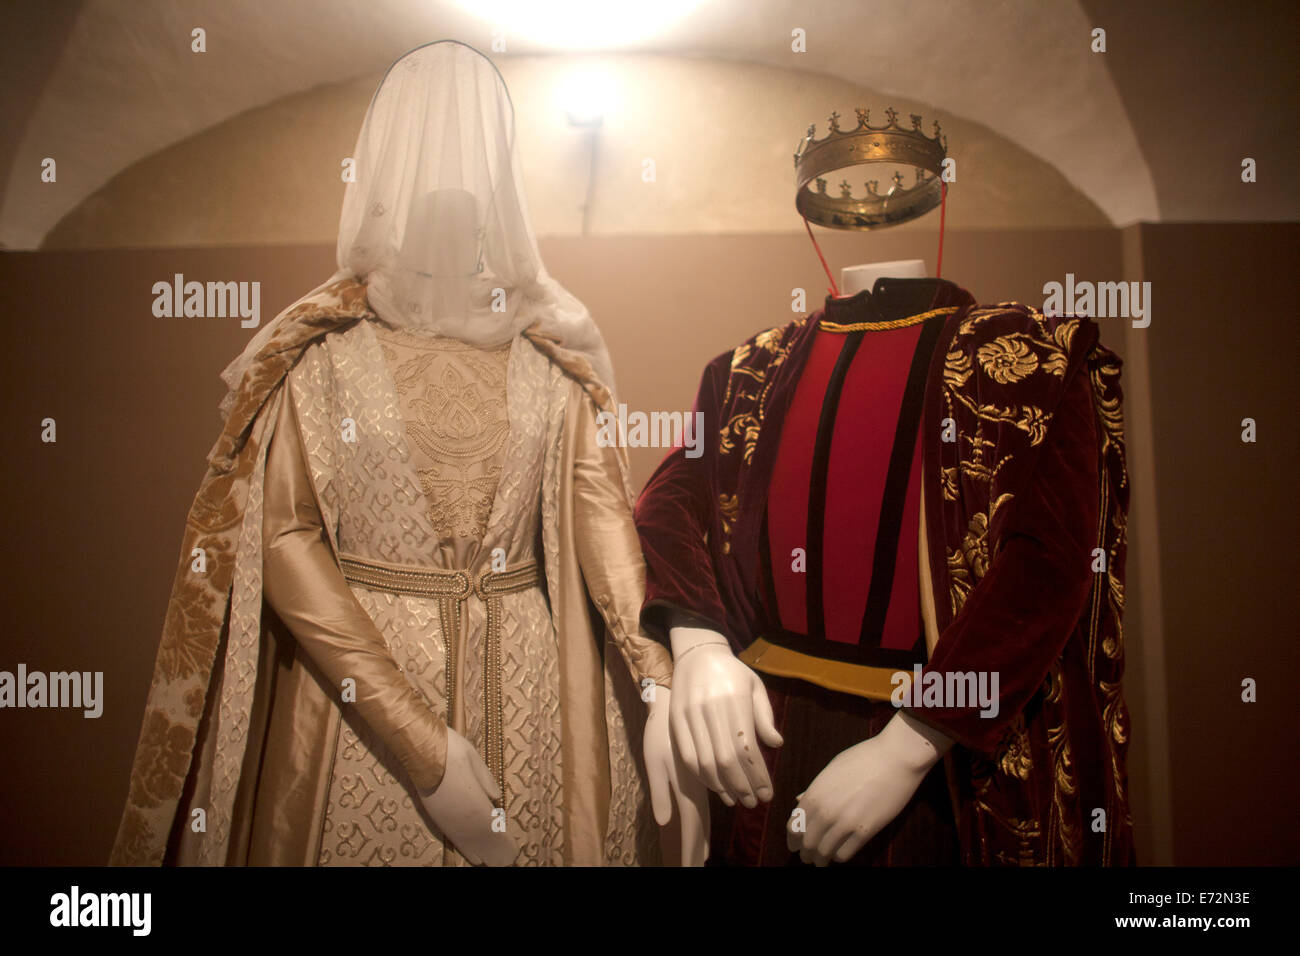 A reproduction of the weeding clothes of the Catholic Monarchs, Queen Isabella I of Castile and King Ferdinand II - Stock Image